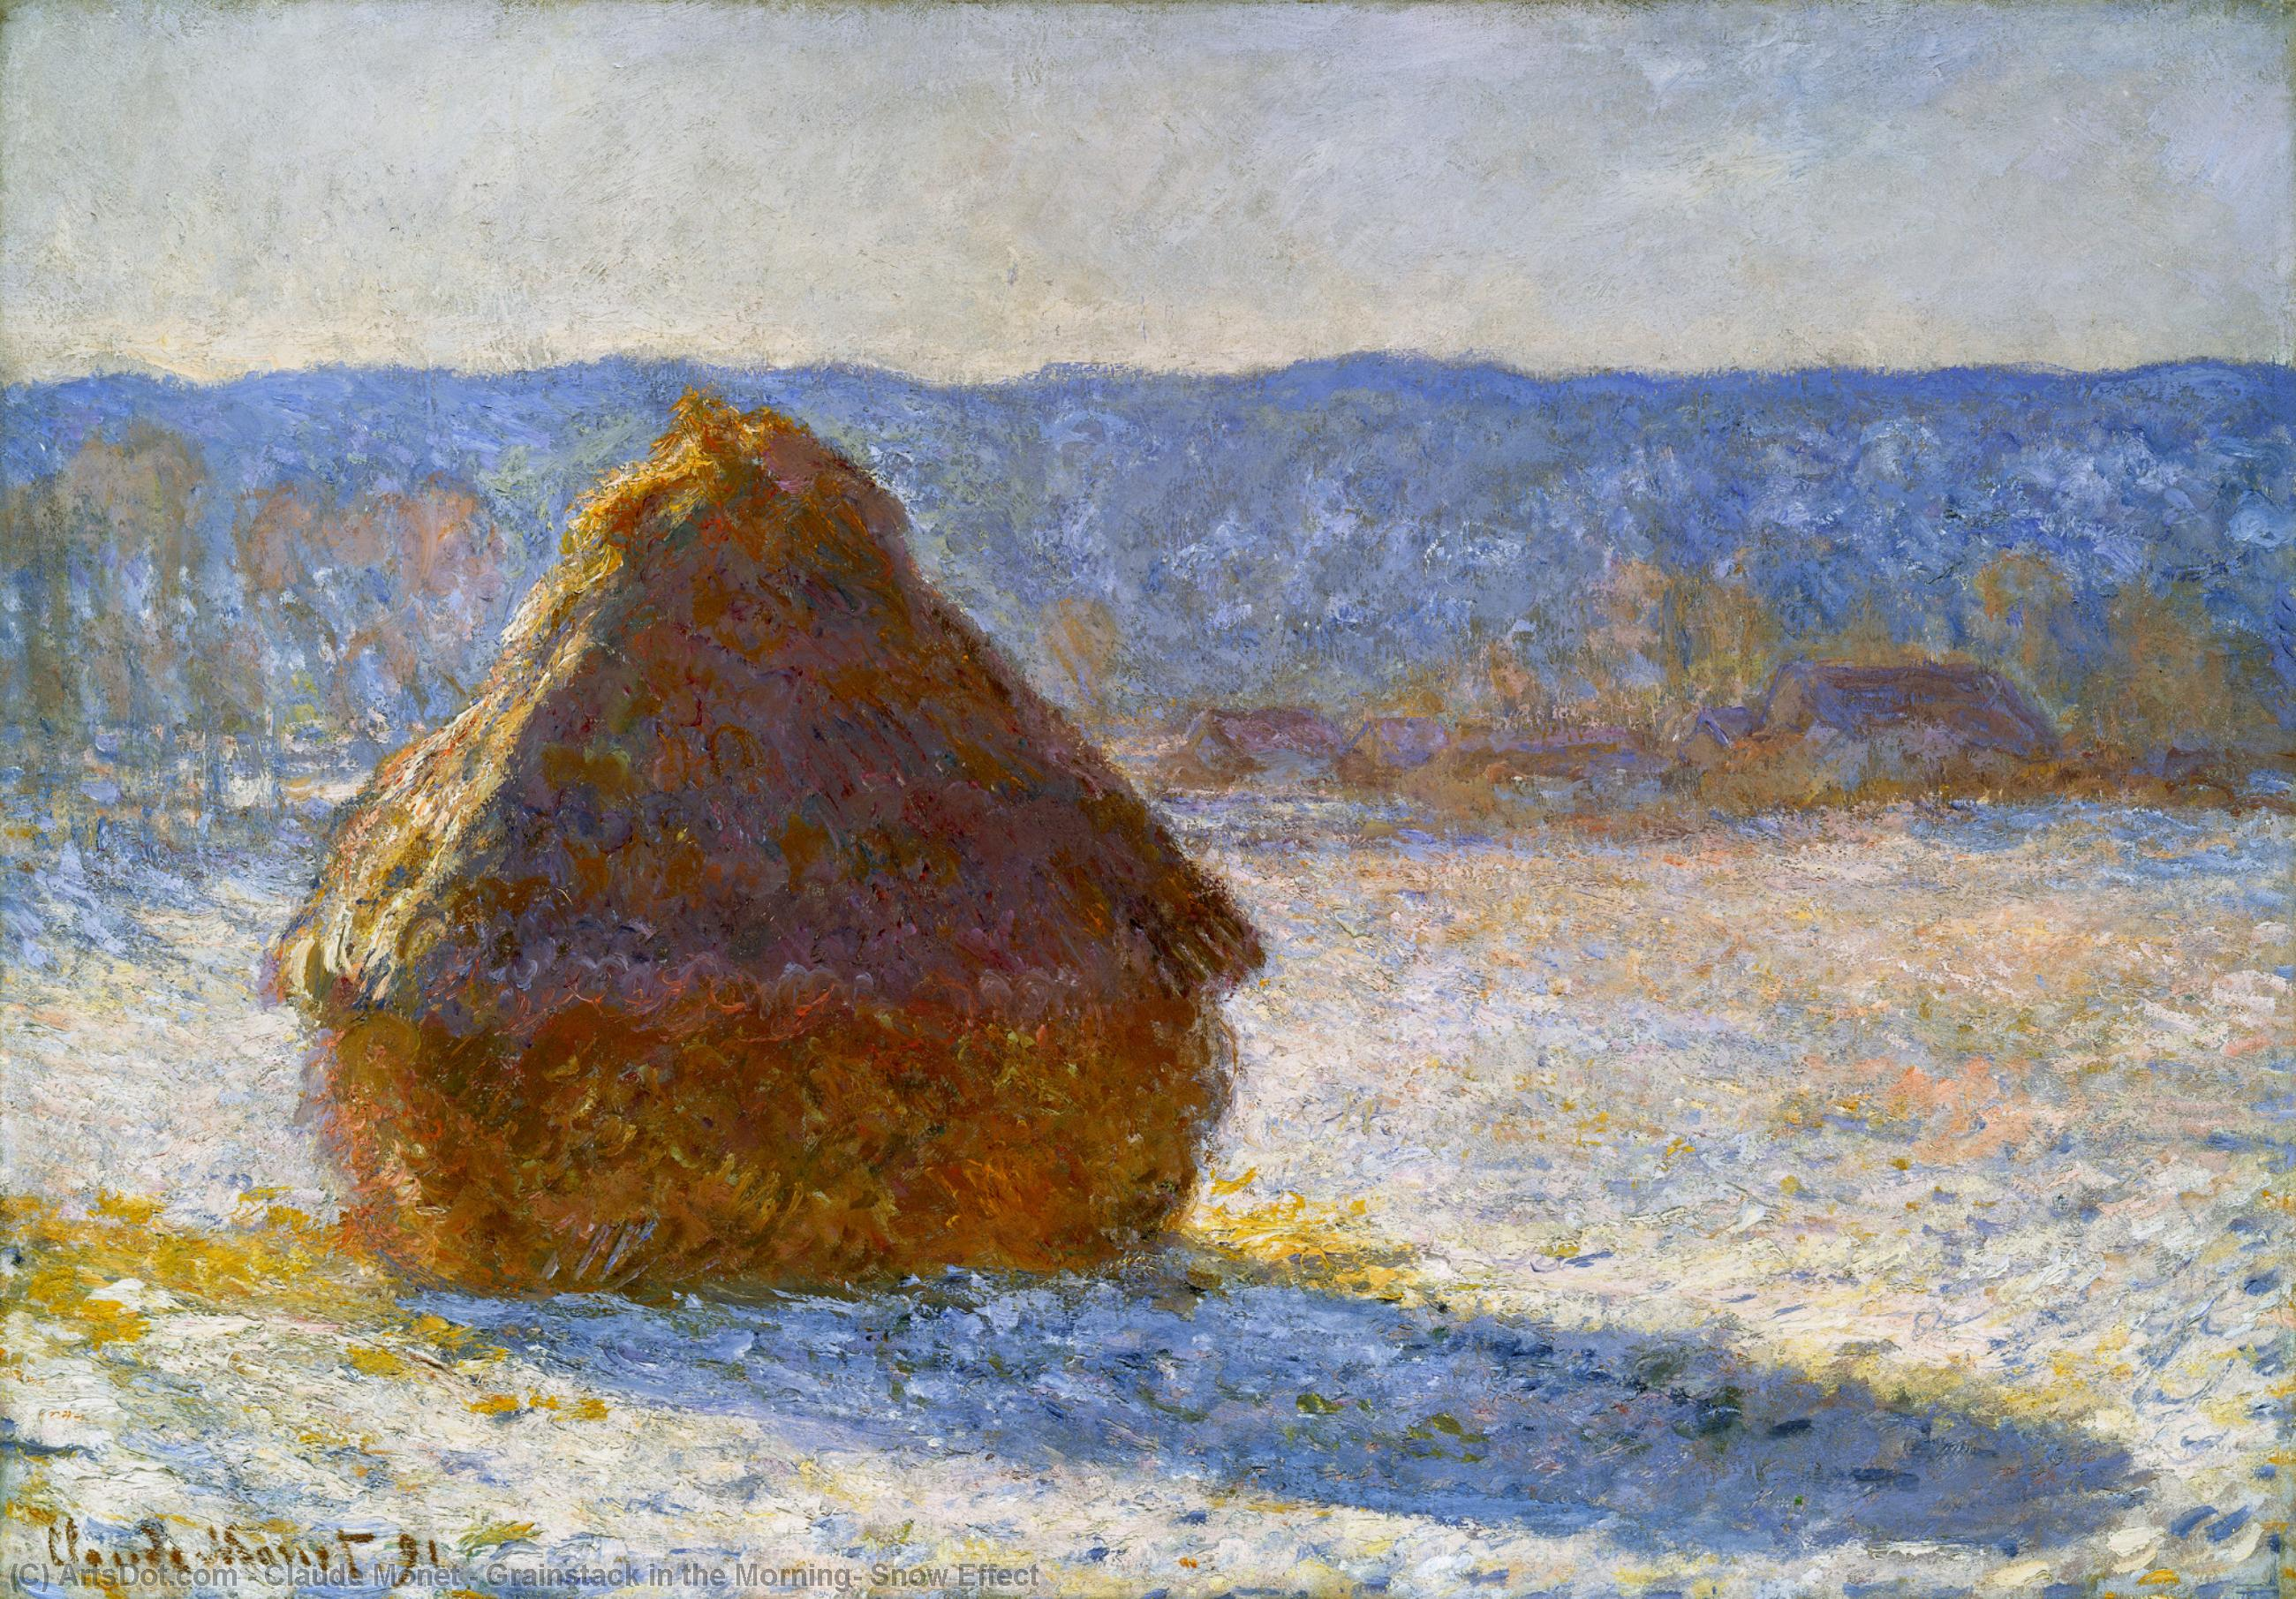 WikiOO.org - Encyclopedia of Fine Arts - Malba, Artwork Claude Monet - Grainstack in the Morning, Snow Effect